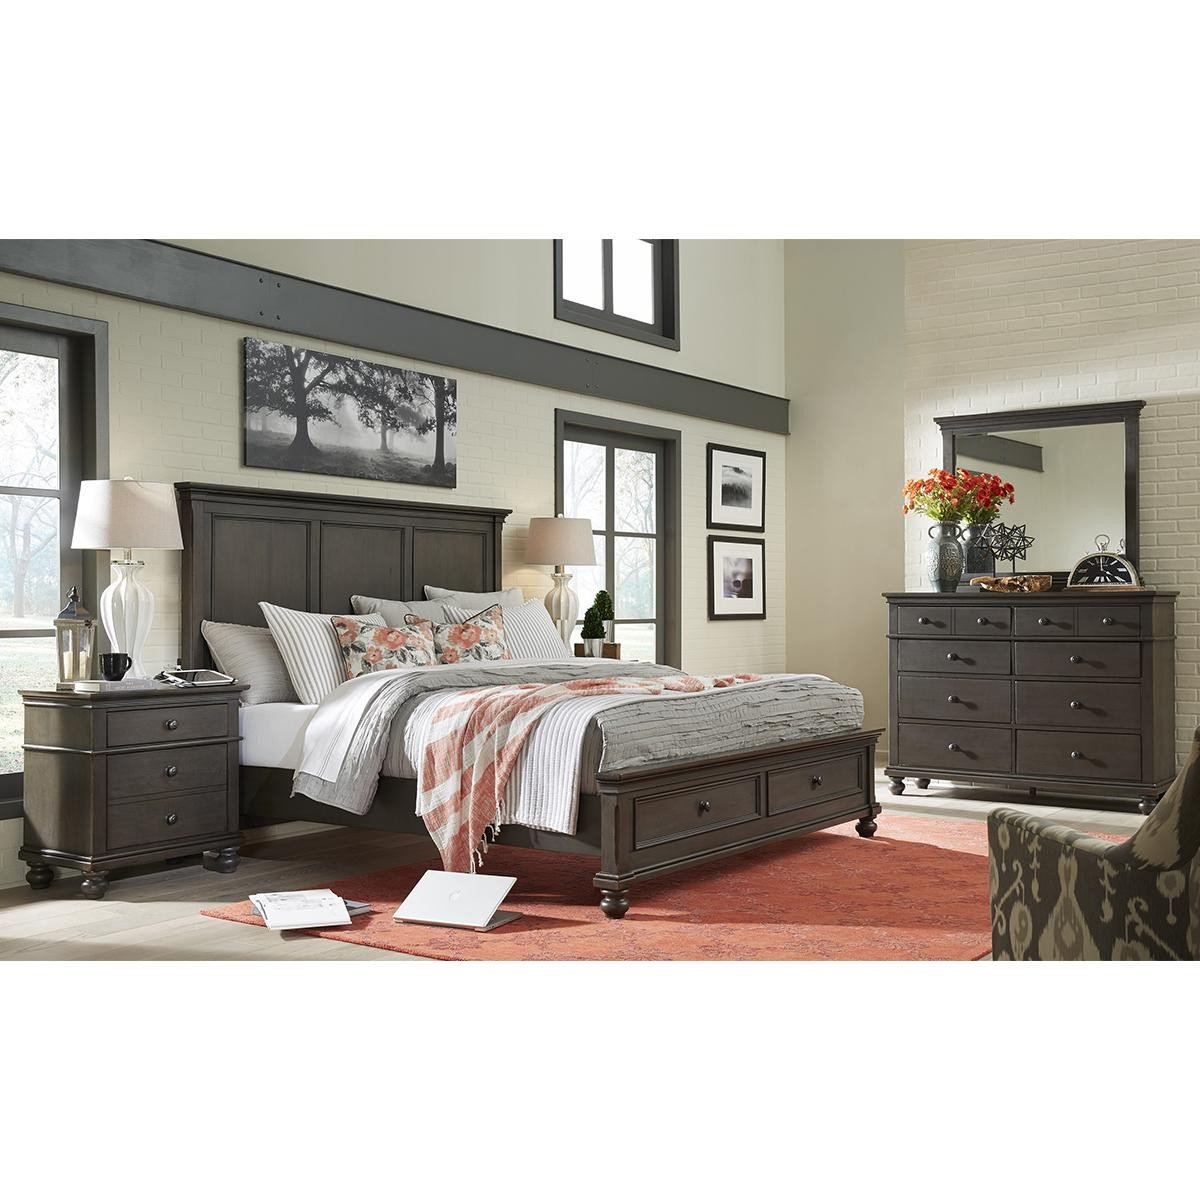 King Size Bedroom Benches Best Of Riva Ridge Oxford 4 Piece King Bedroom Set In Peppercorn